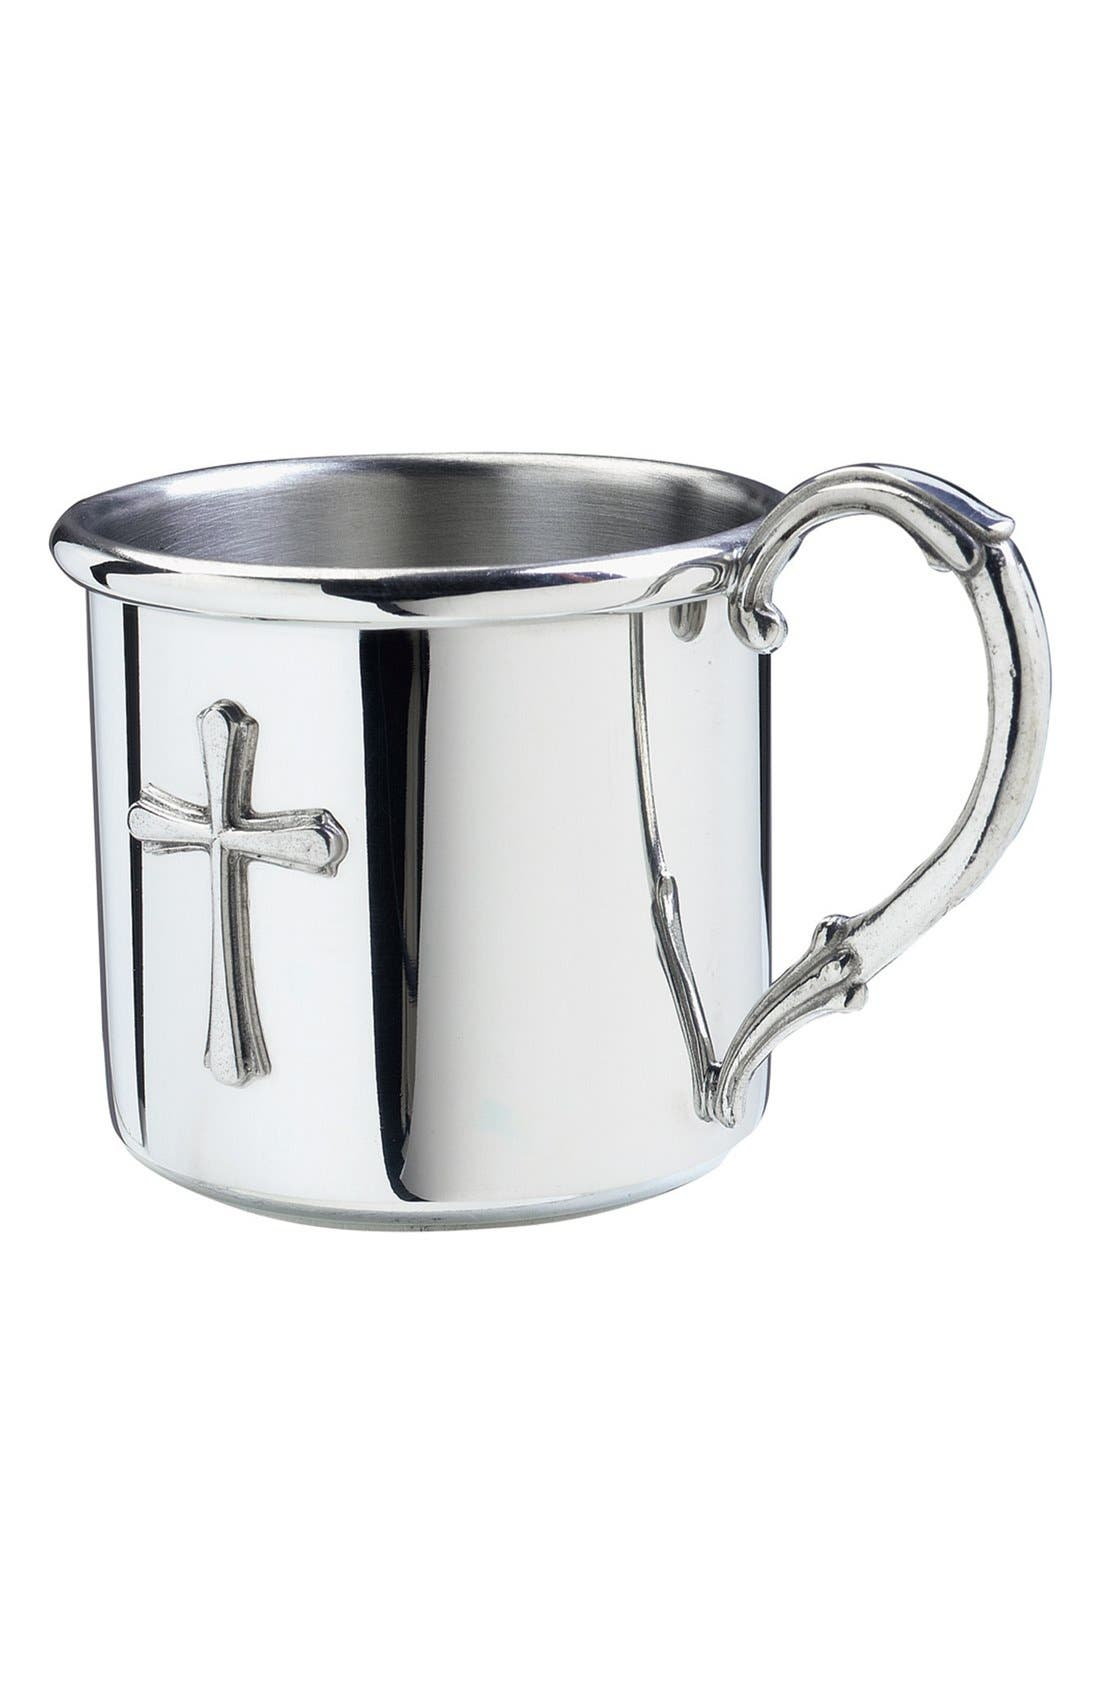 'Easton - Cross' Personalized Cup,                             Main thumbnail 1, color,                             NONE